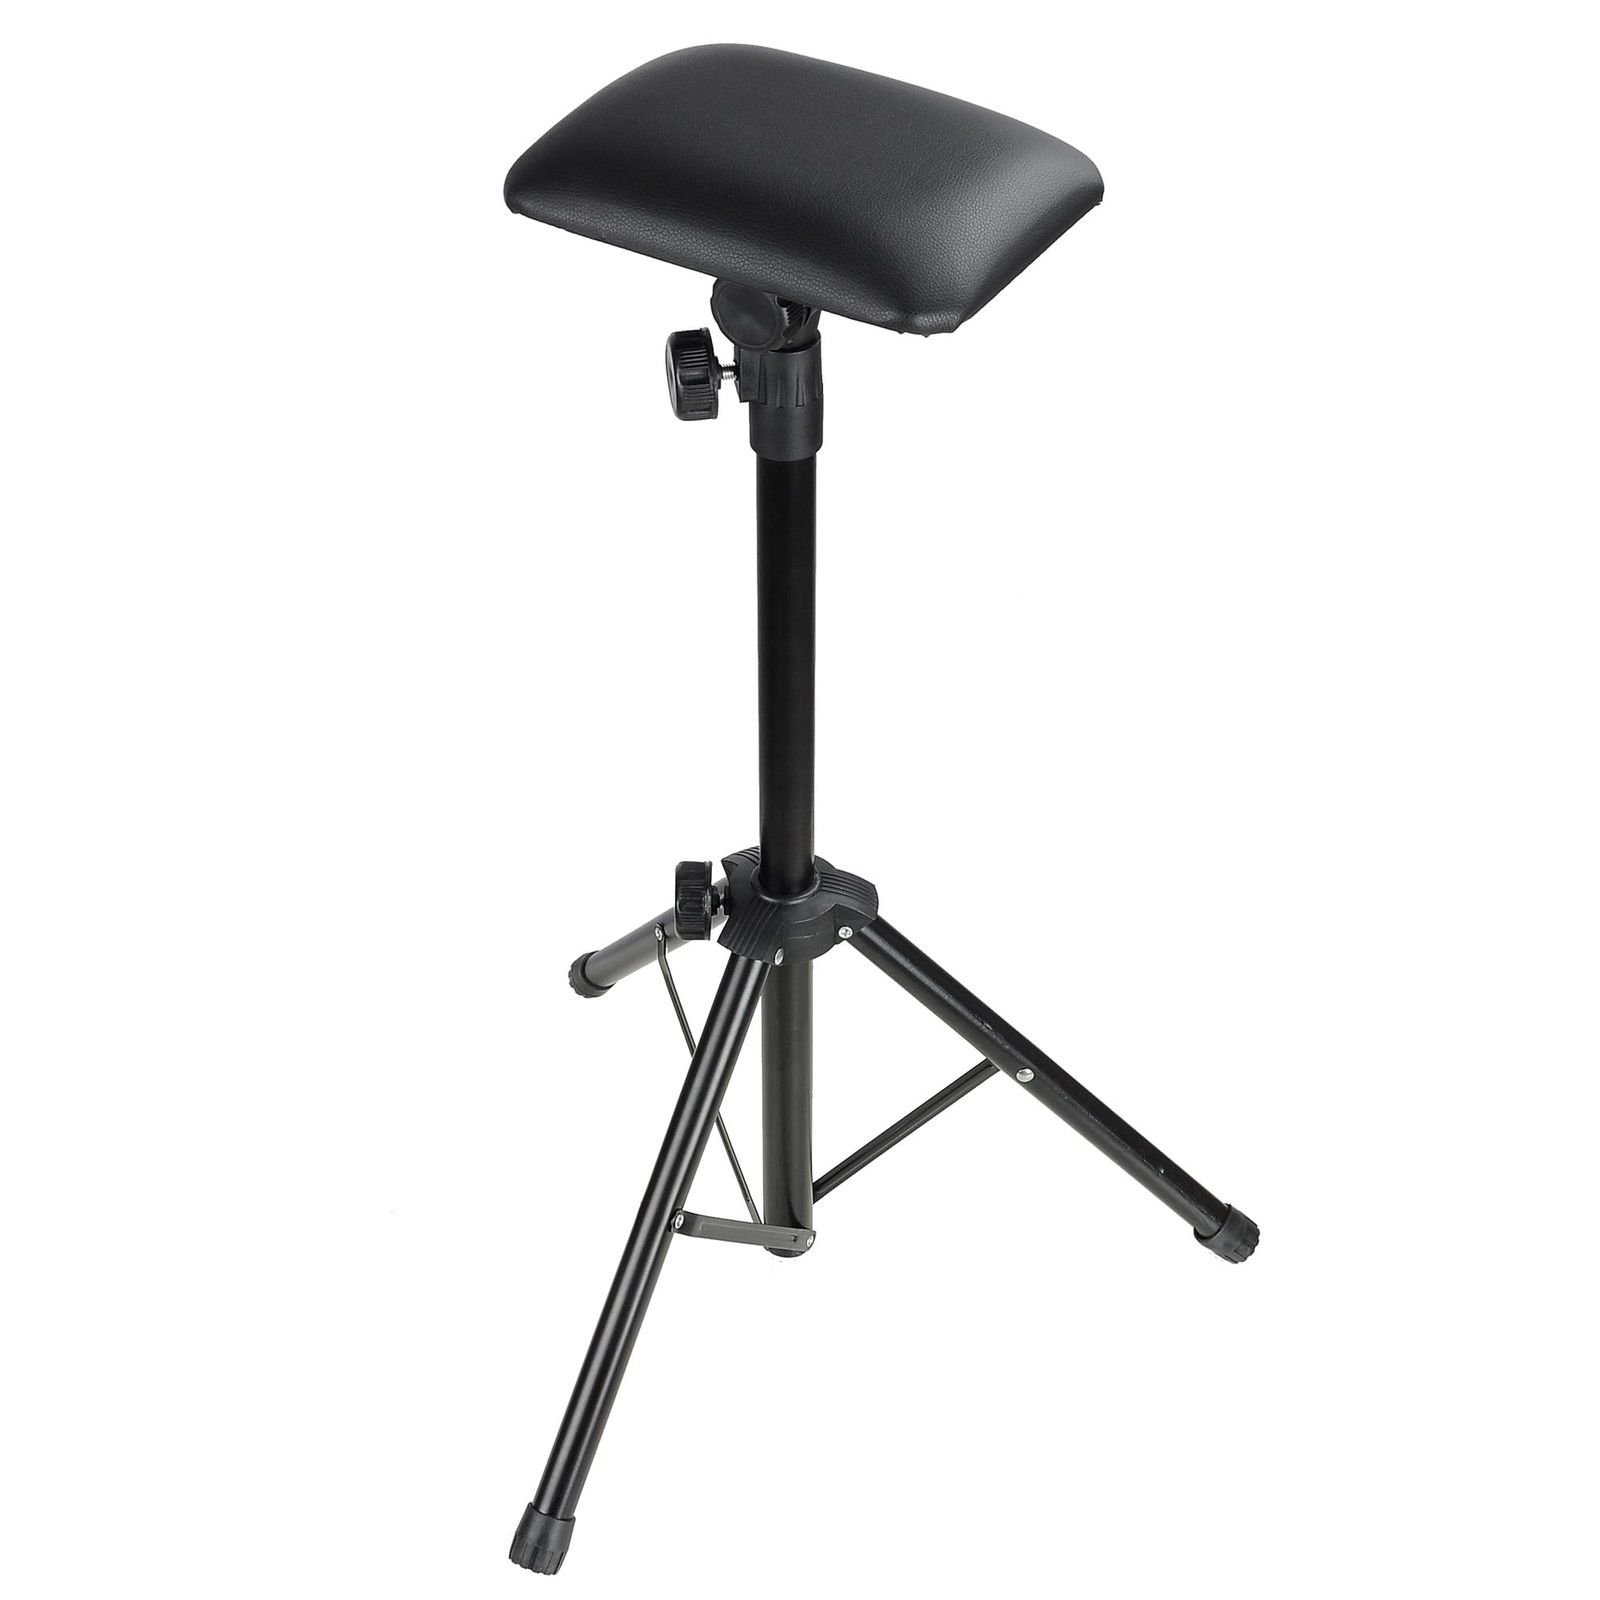 AW Tattoo Armrest Foldable Foam Pad Arm Bar Leg Rest Studio Stand Adjustable Height PVC Leather by AW